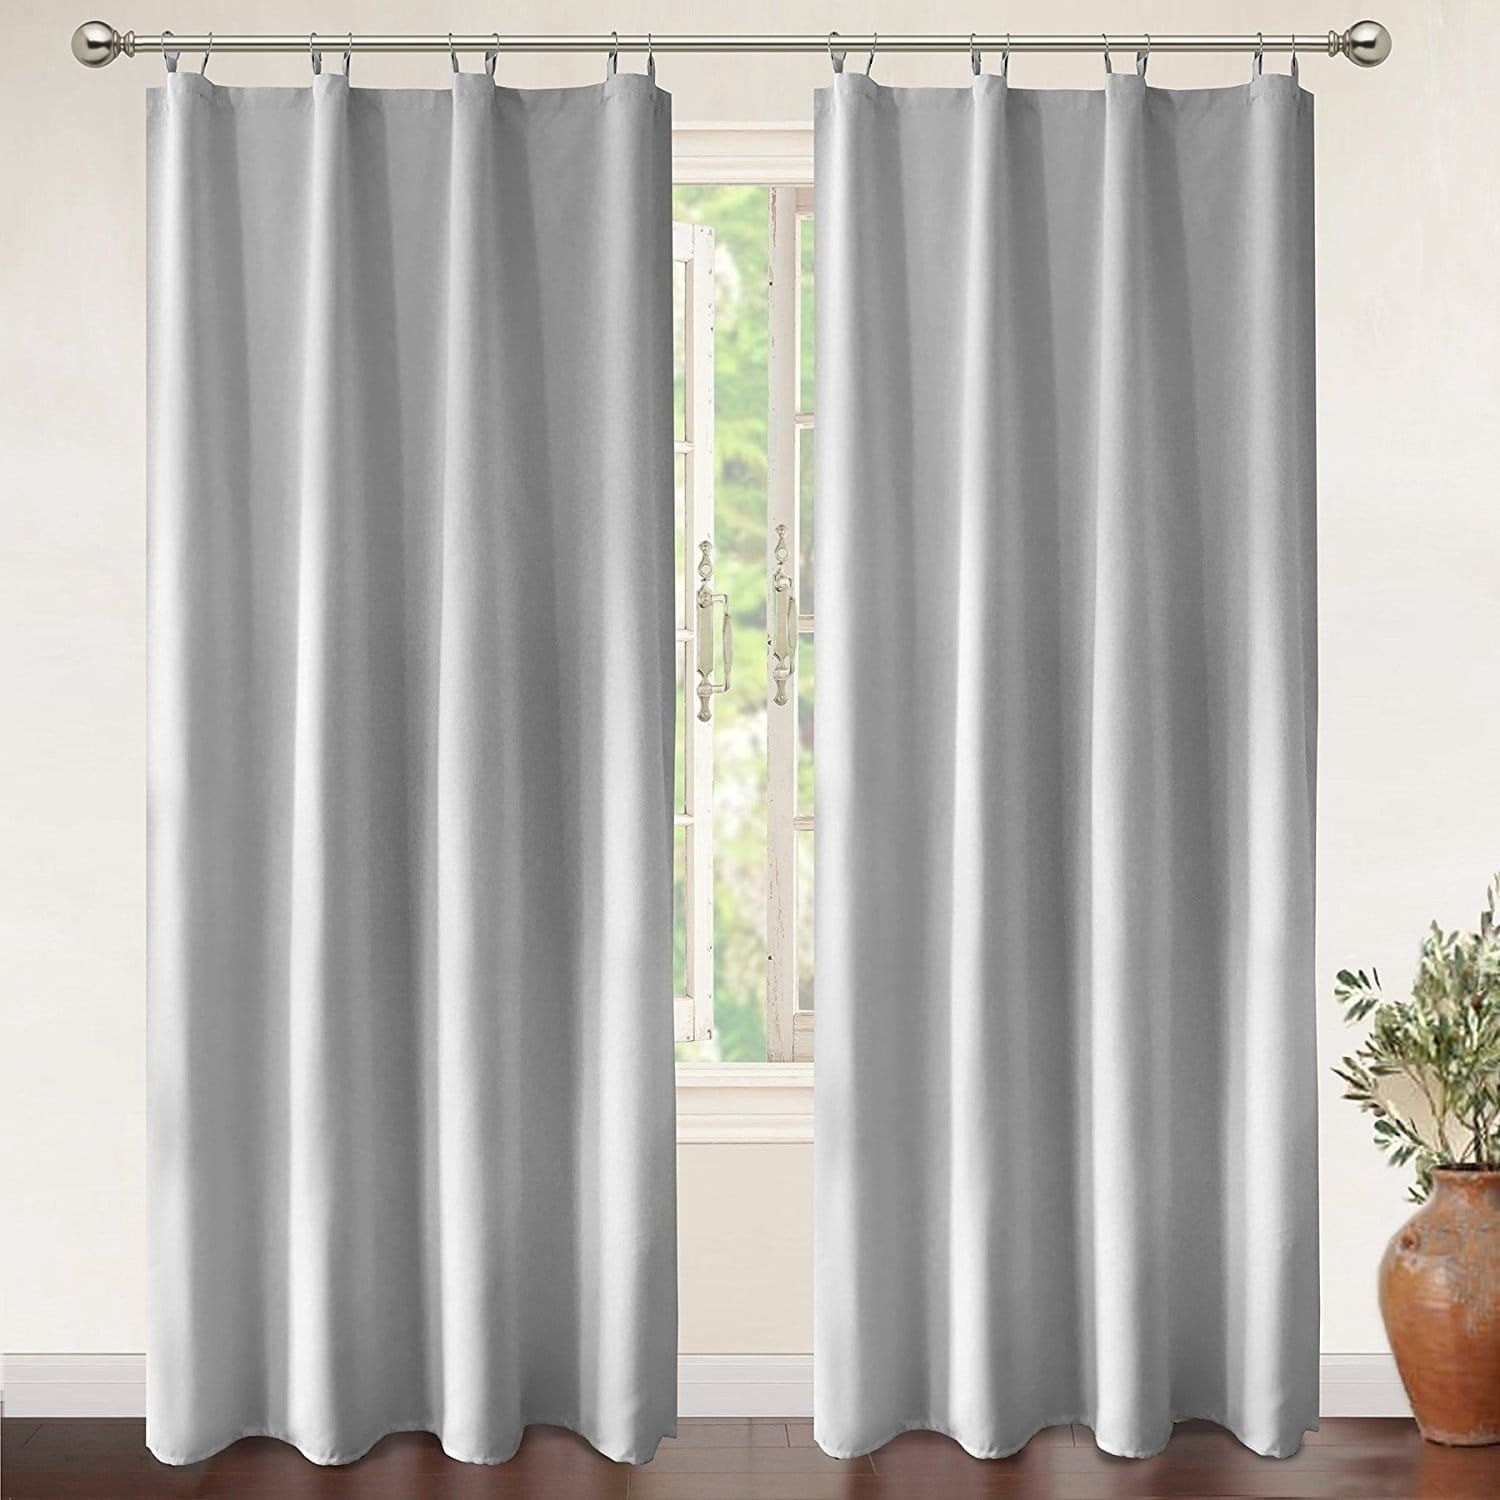 Driftaway Insulated Blackout Curtain Liner For Grommet Curtains 96